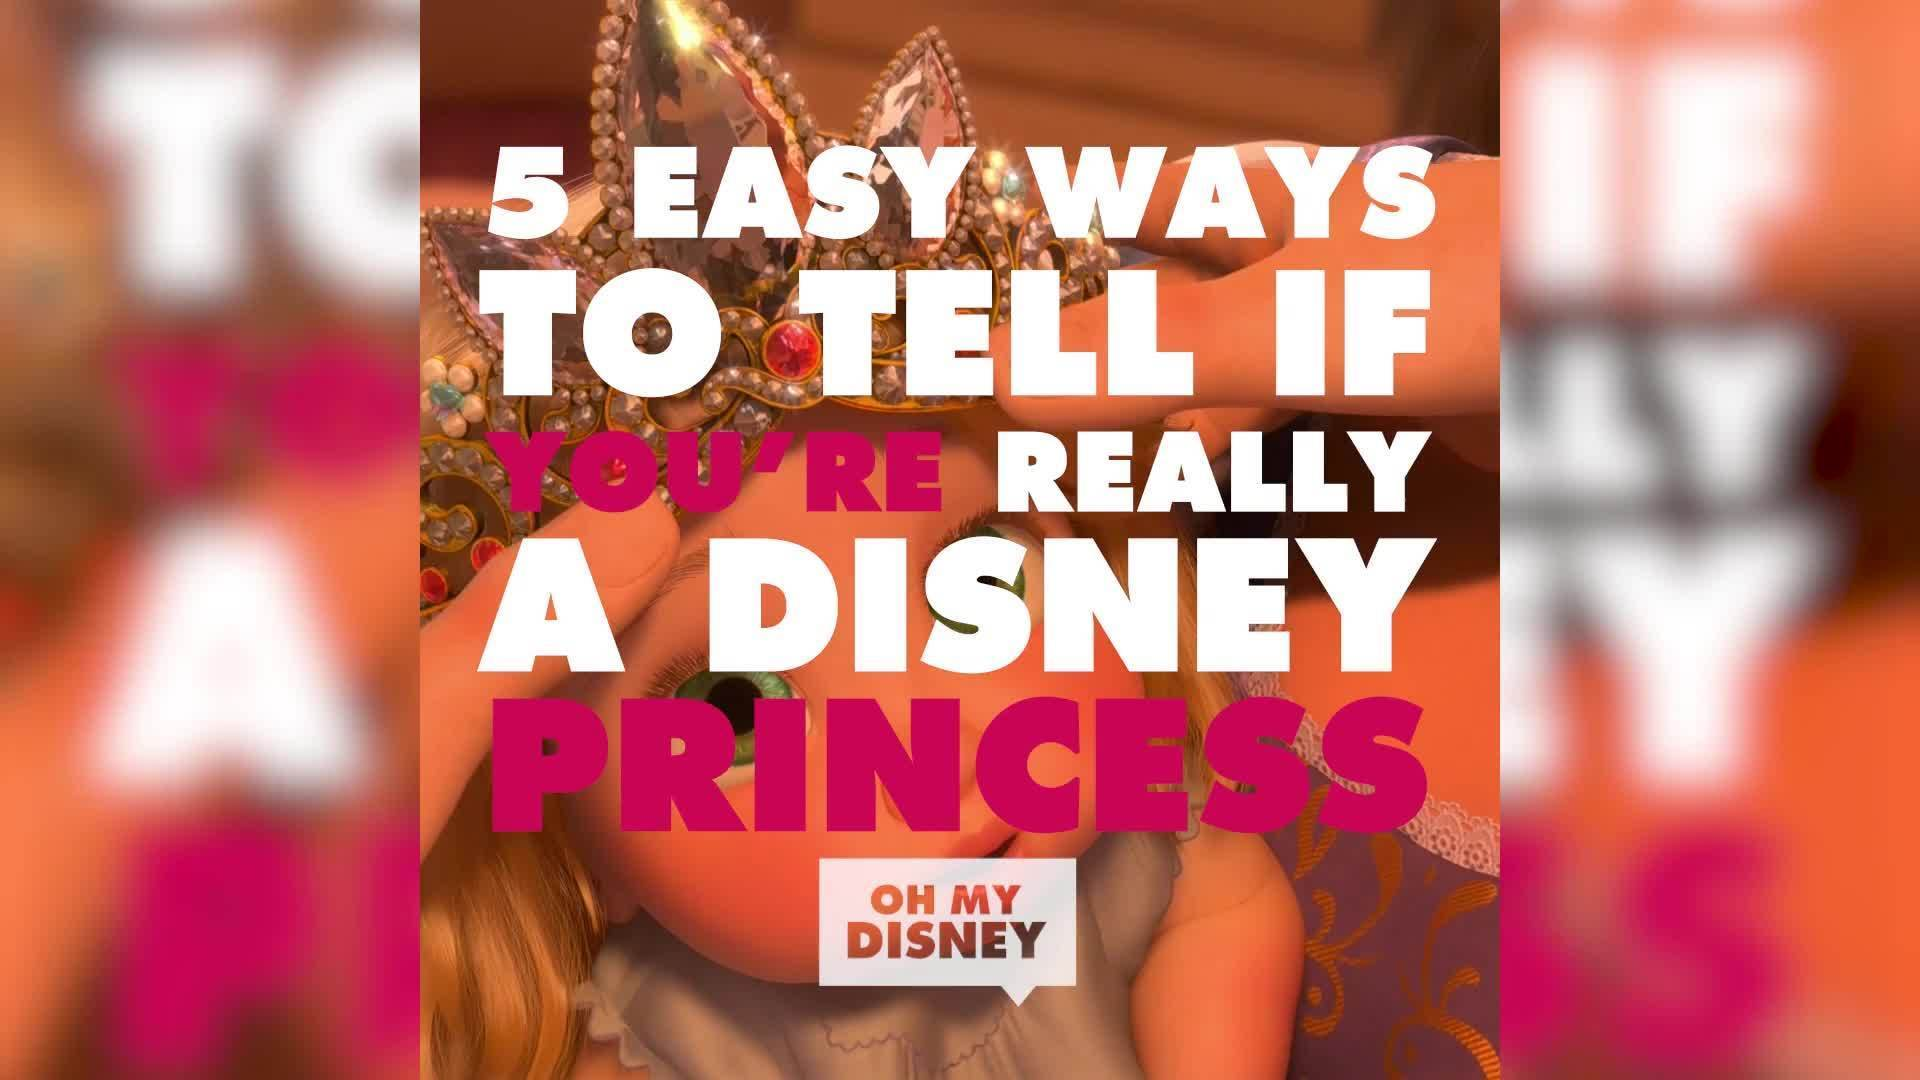 5 Easy Ways to Tell if You're a Disney Princess | ListVids by Oh My Disney